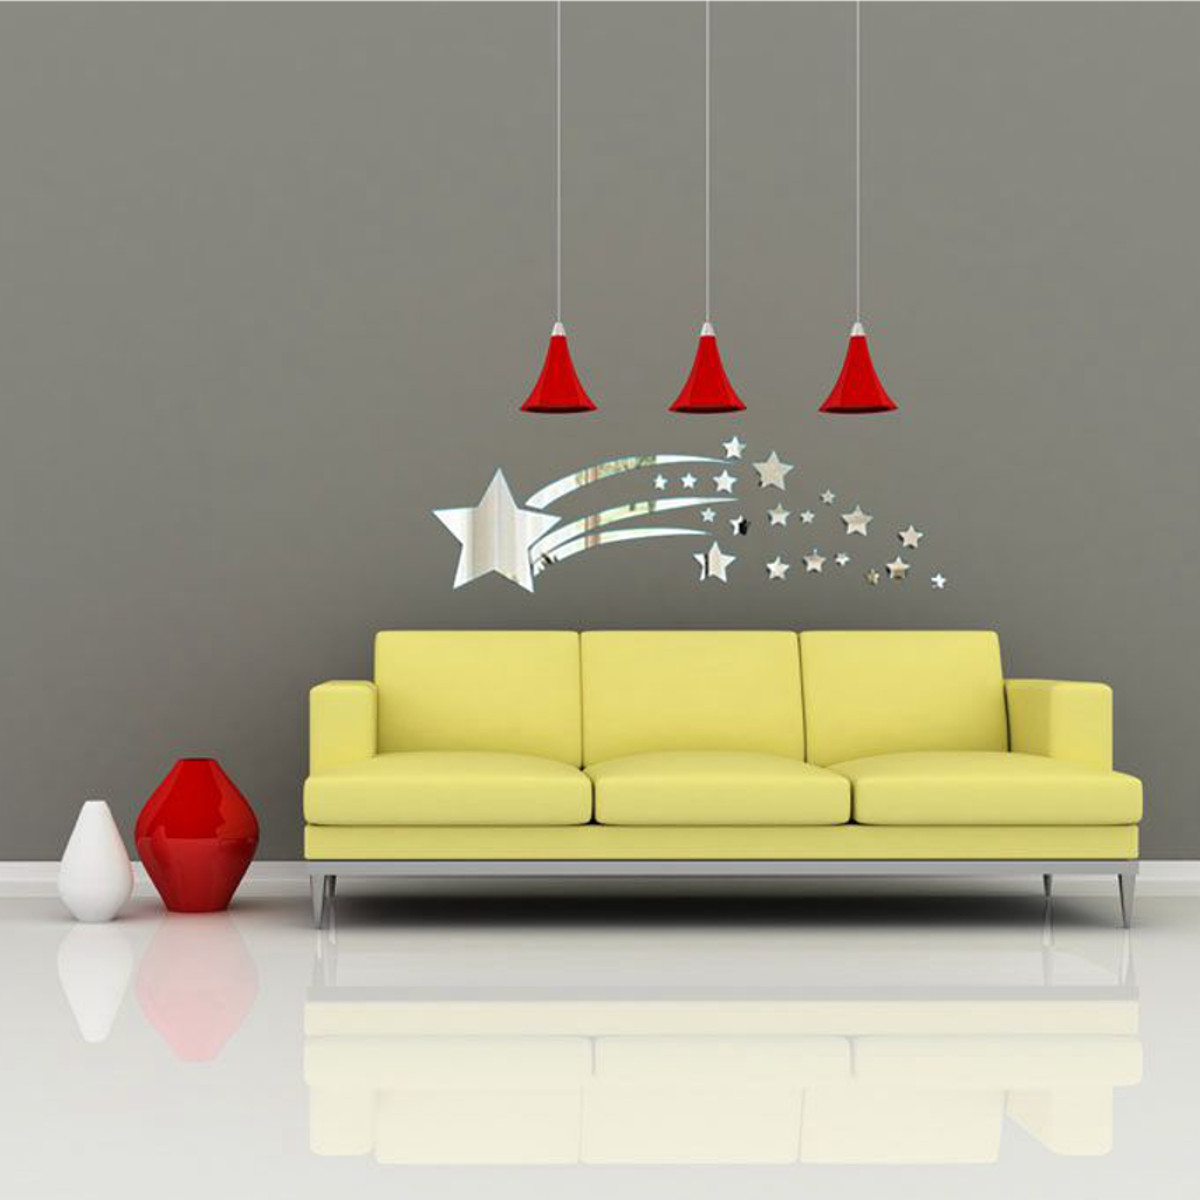 Old Fashioned Star Mirror Wall Decor Composition - All About Wallart ...